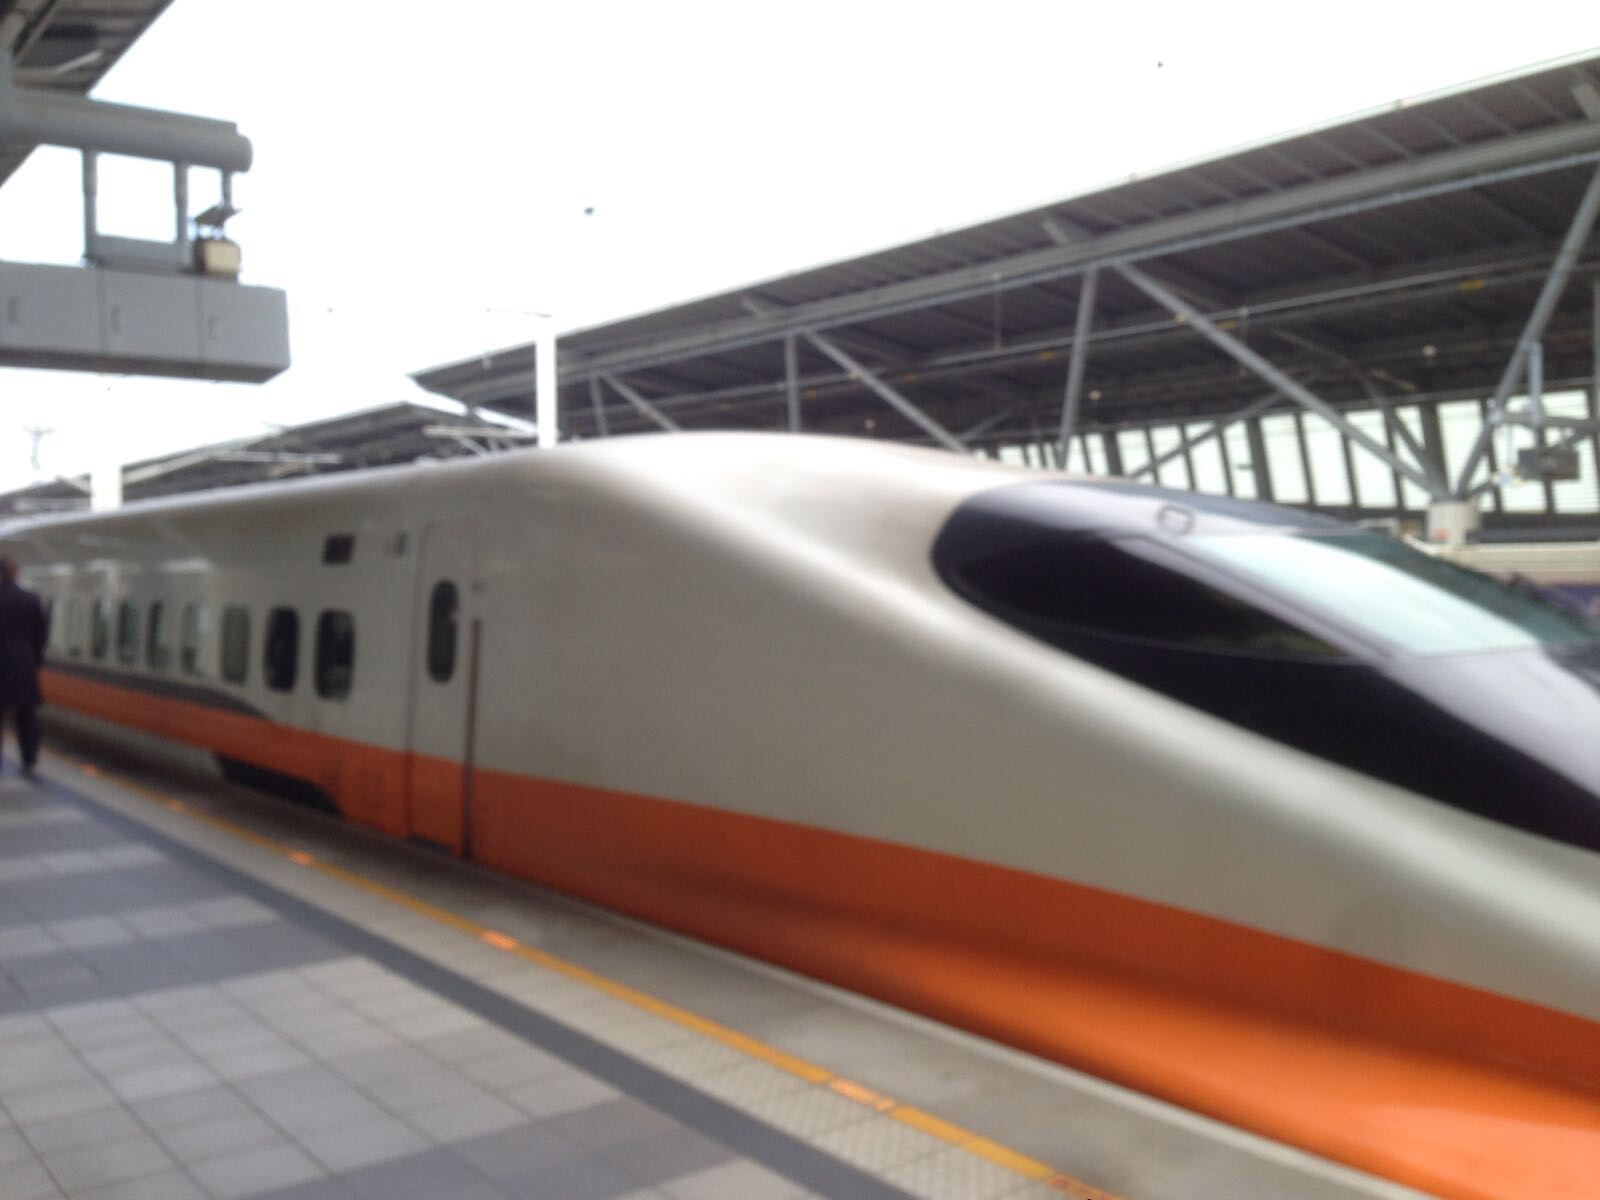 Le High Speed Train en gare de Tainan